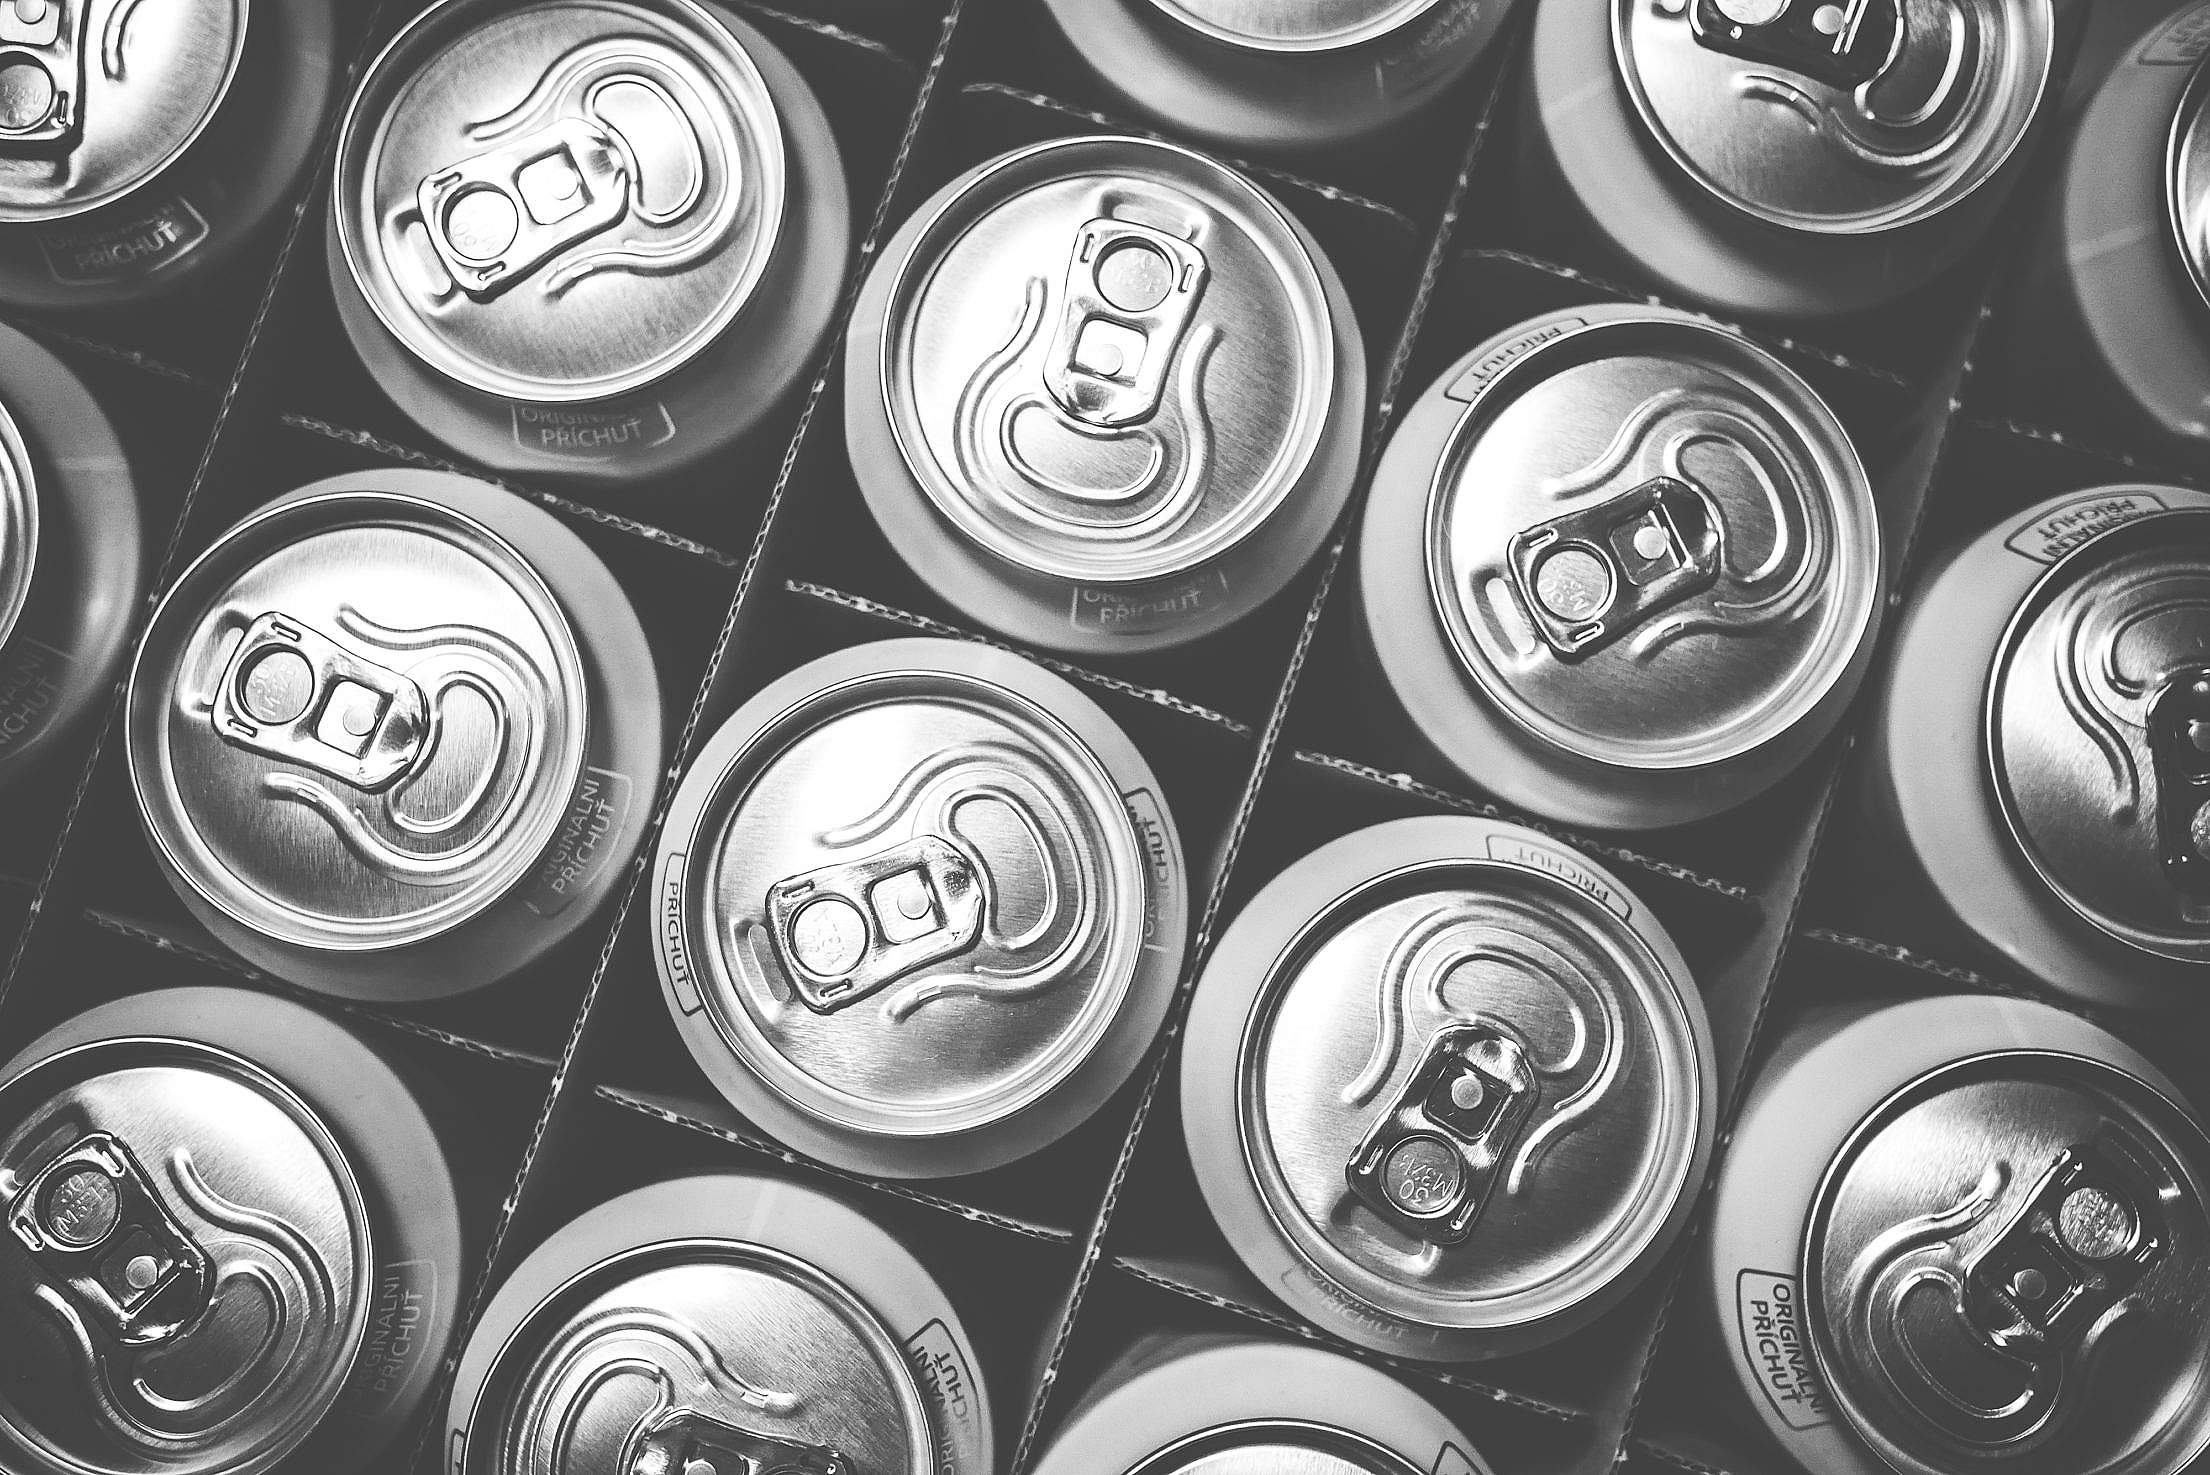 Pattern of Soda Drink Cans Free Stock Photo